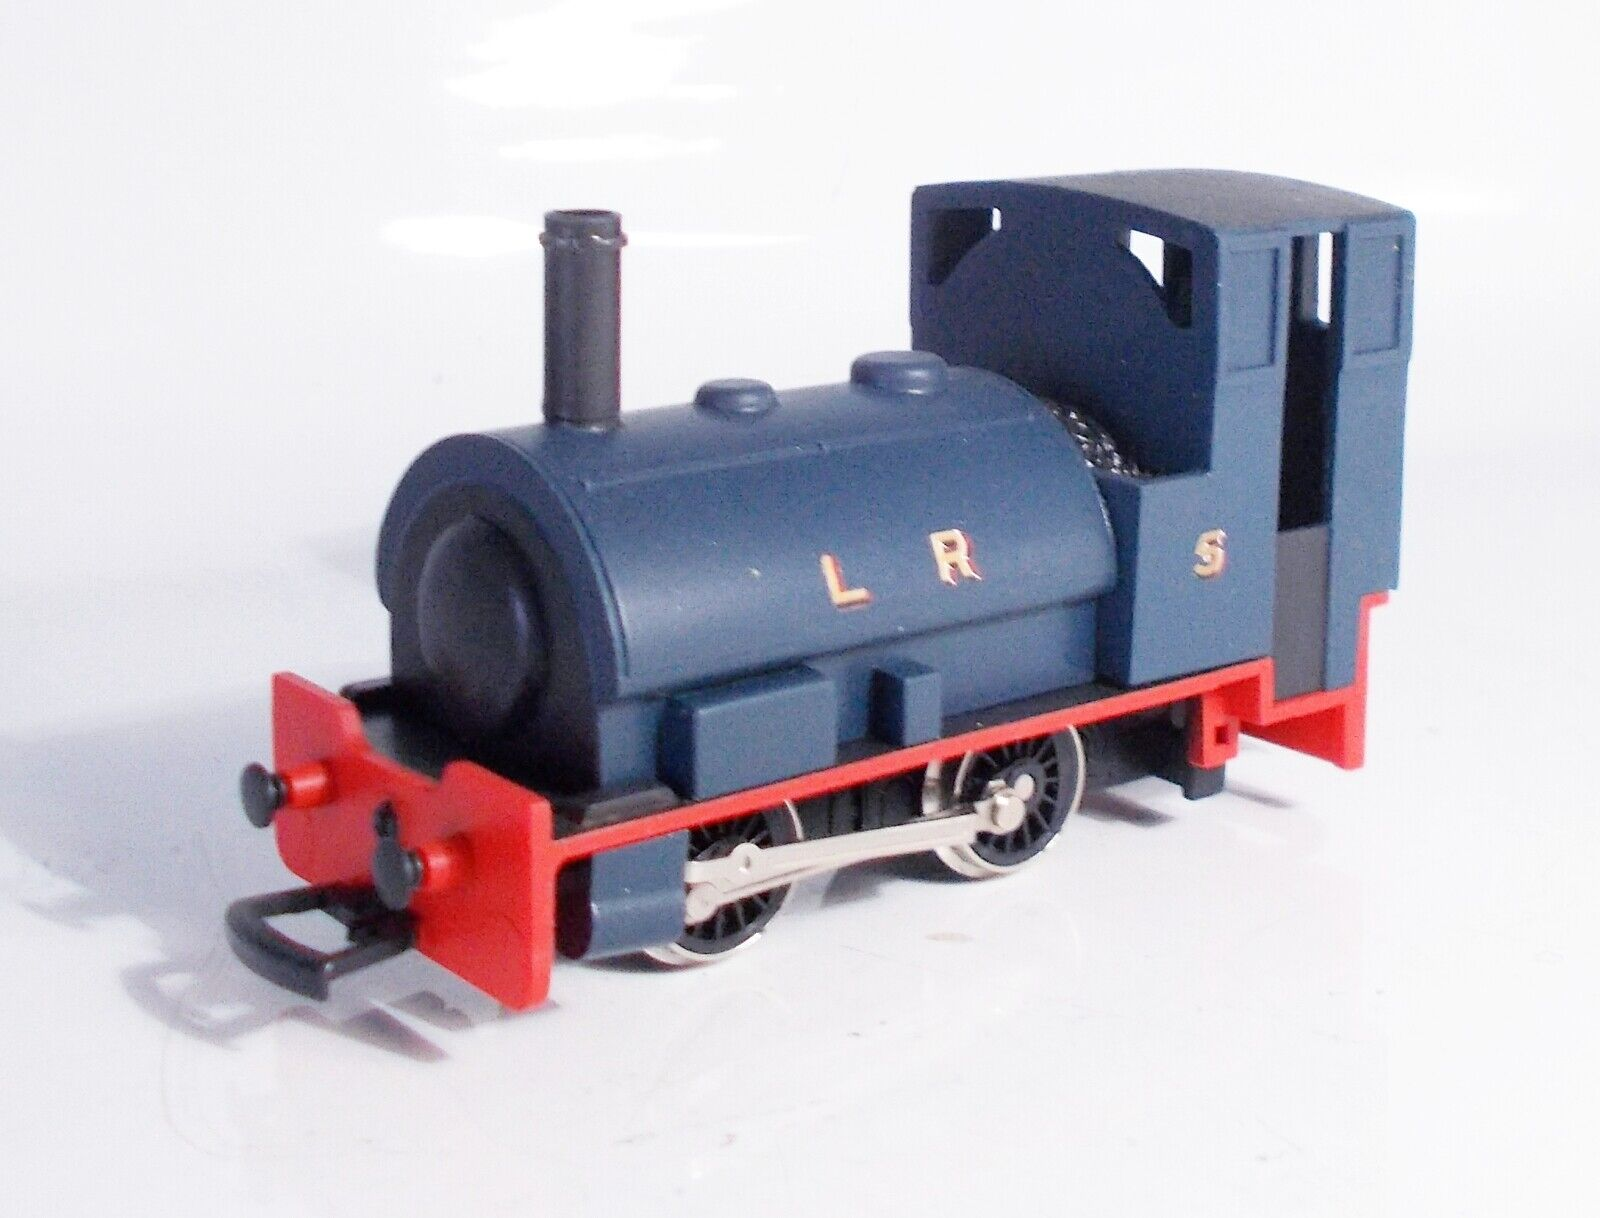 0-16.5 Scale Narrow Gauge modified Hornby  Bill  locomotive